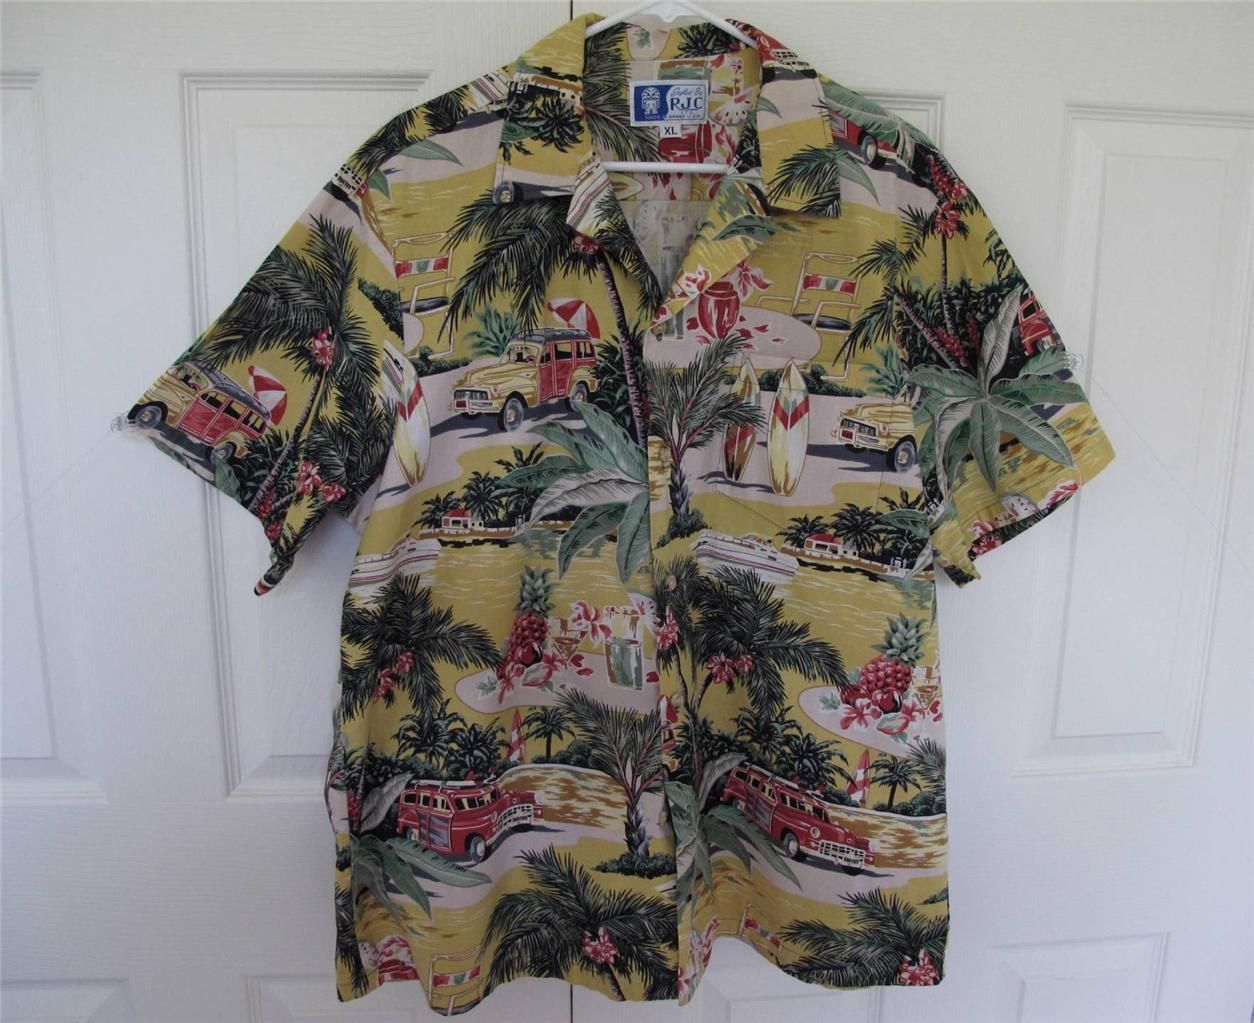 Primary image for Vintage RJC Hawaiian Shirt XL Woody Station Wagon Classic Cars Cotton Surf Board